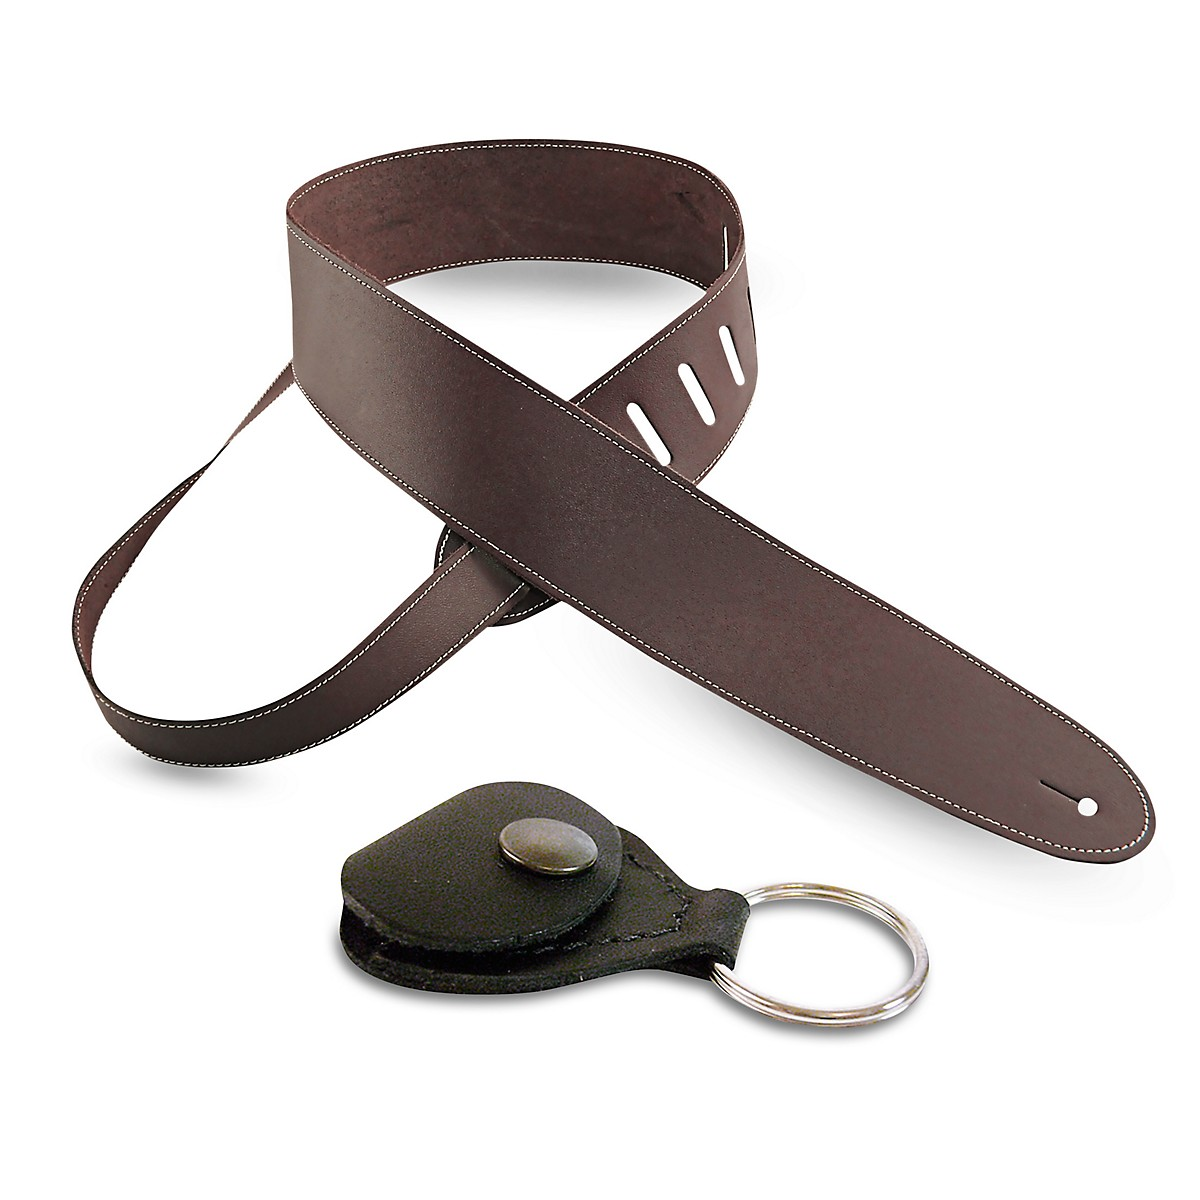 Perri's Basic Leather Guitar Strap with Leather Guitar Pick Key Chain